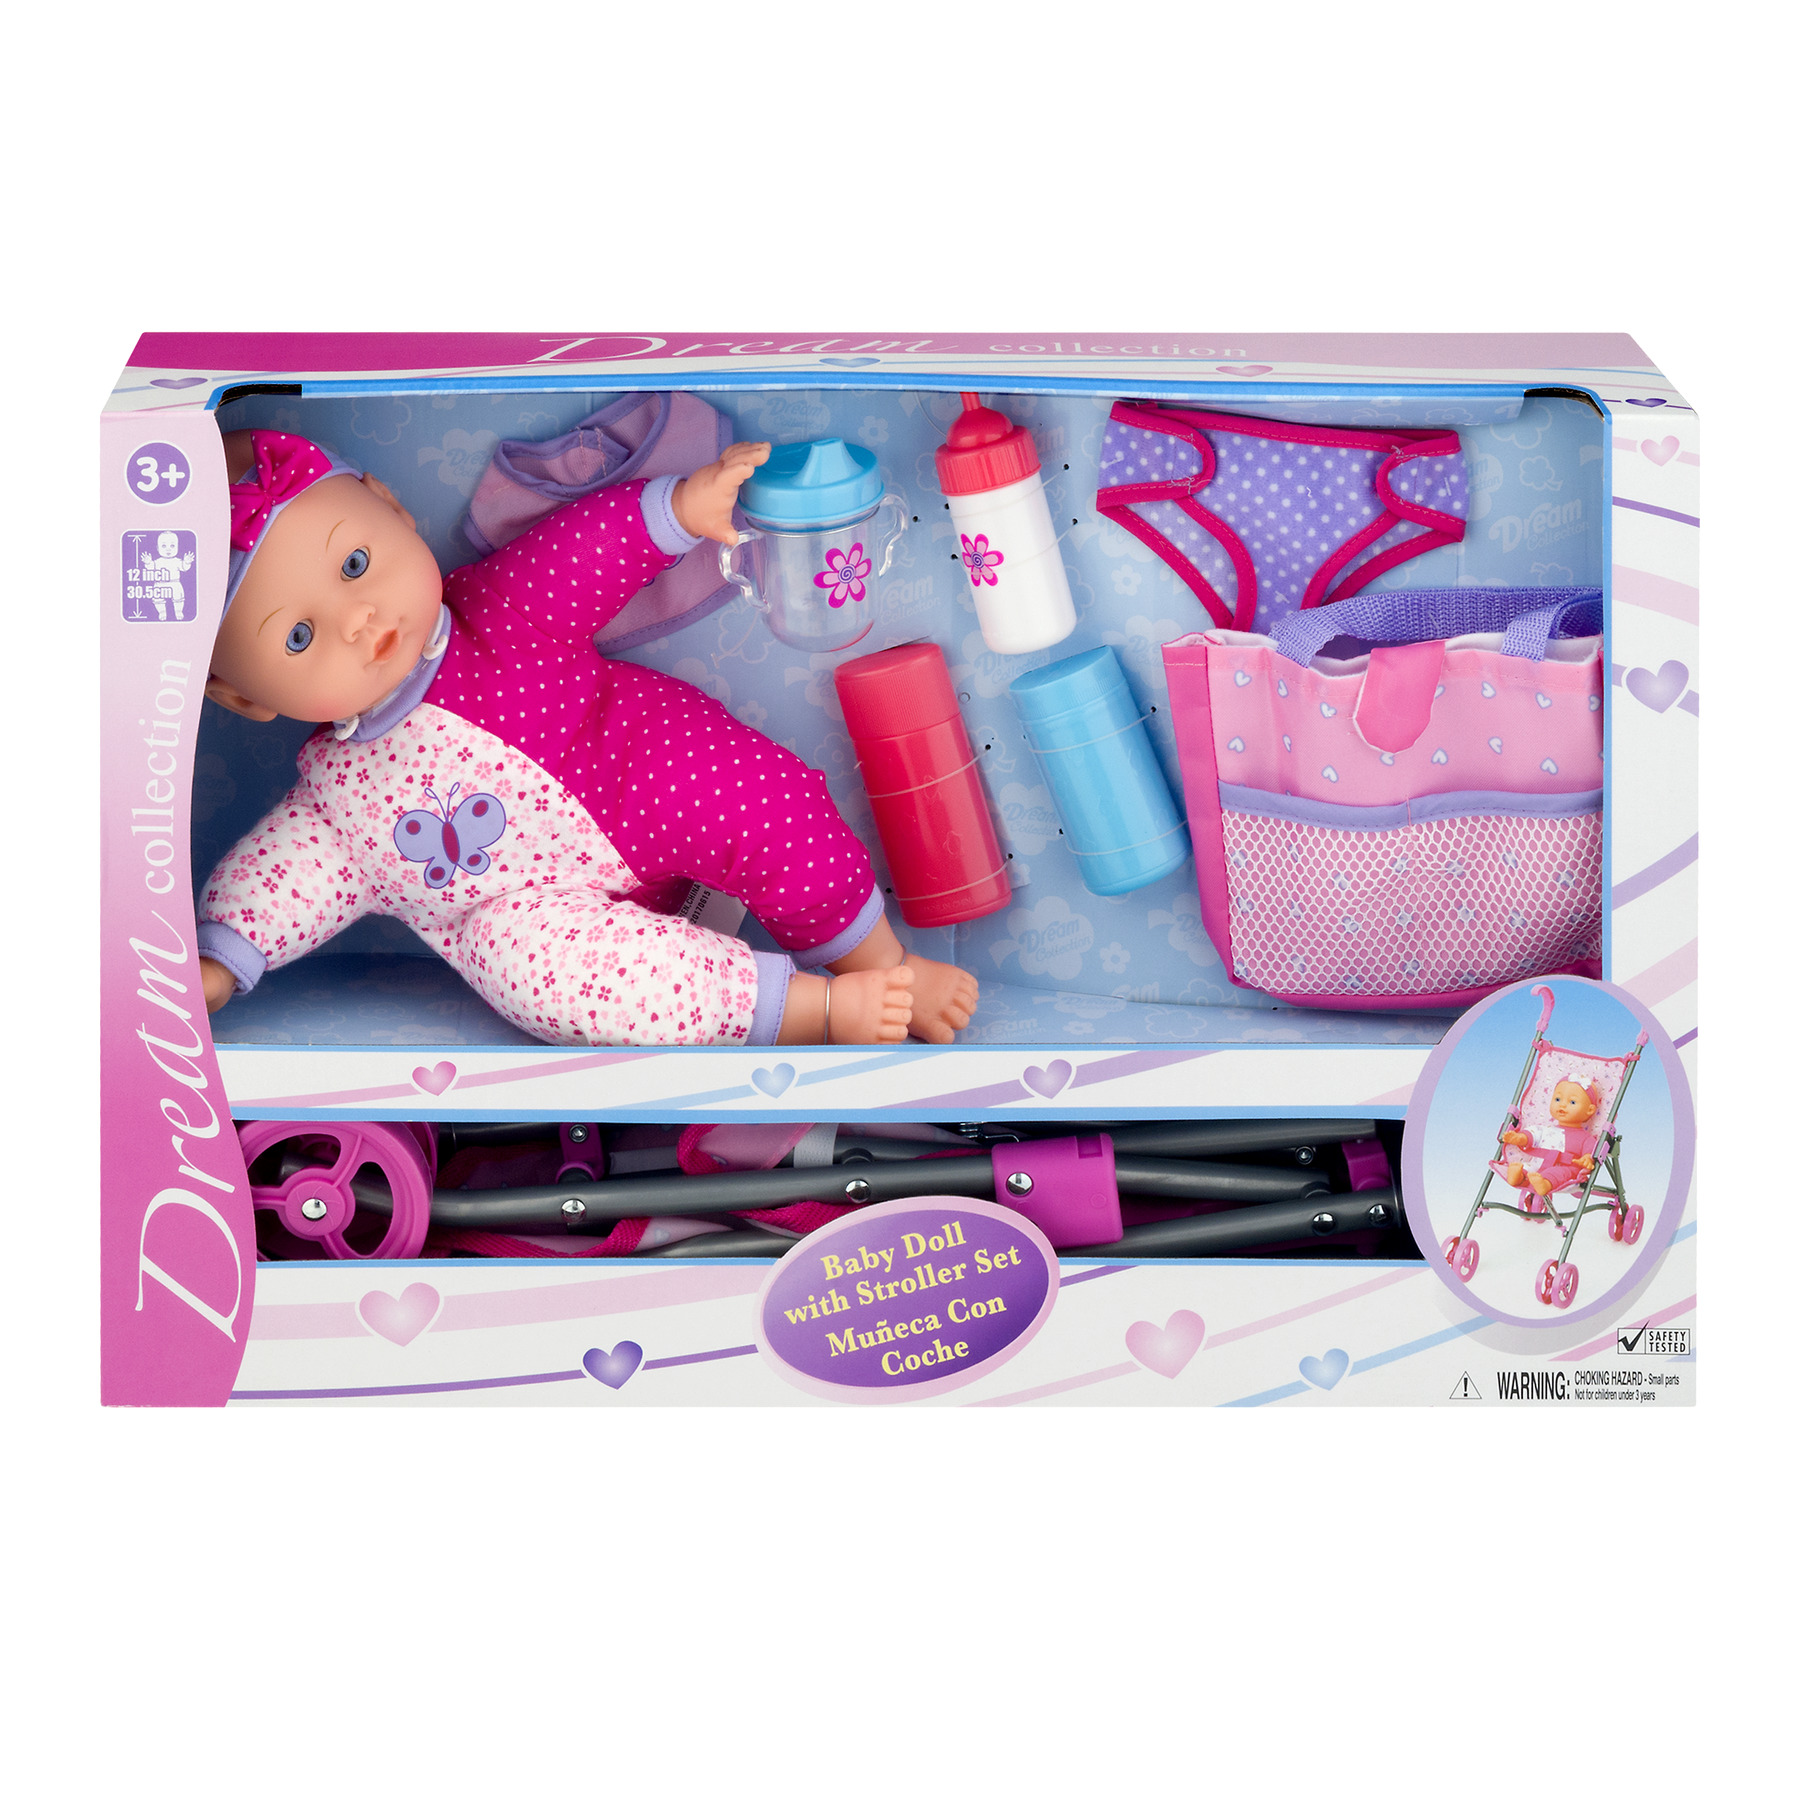 Dream Collection Baby Doll with Stroller Set, 1.0 PACKAGE by Gi-Go Toys Factory Ltd.